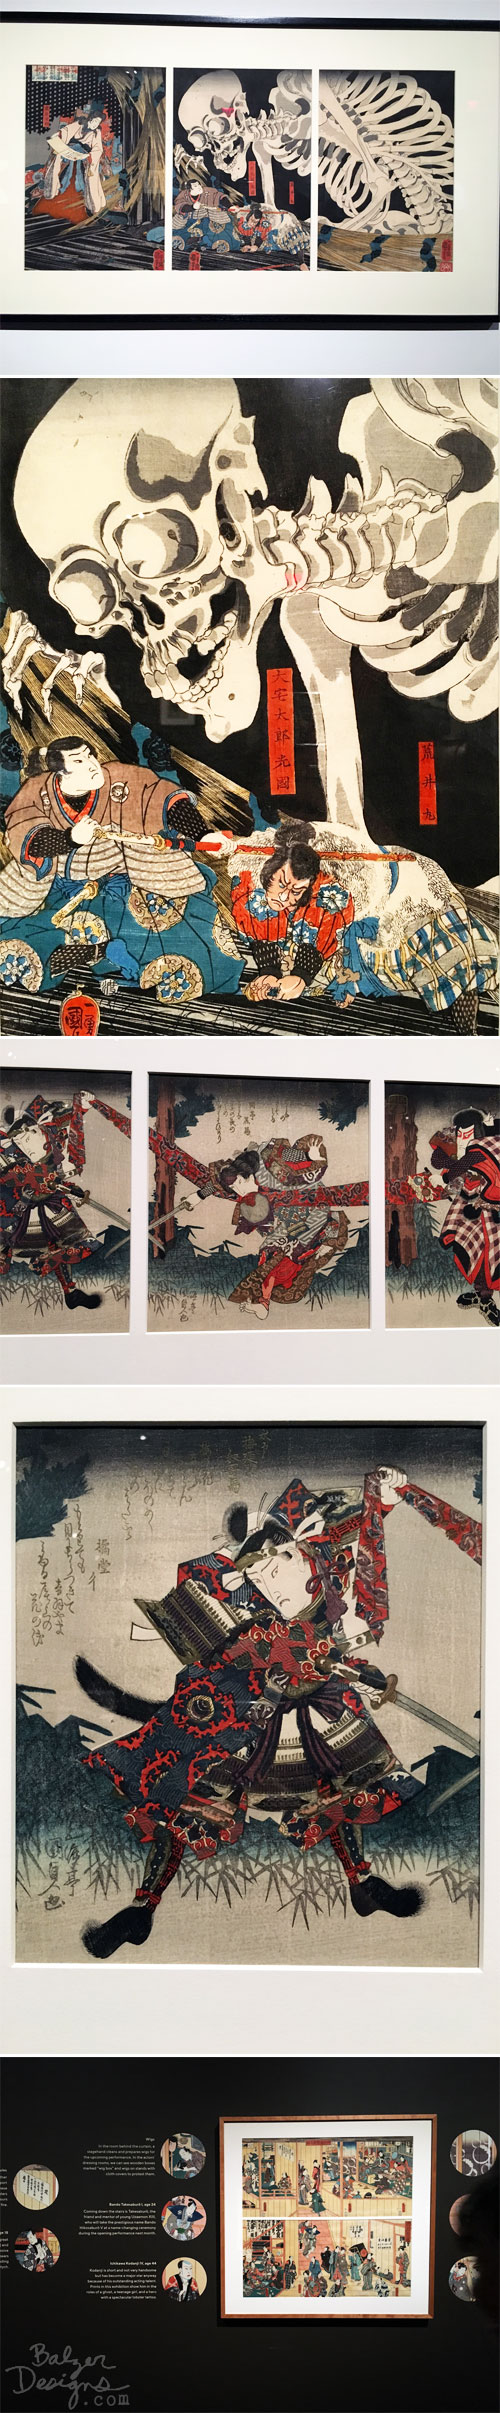 From the Balzer Designs Blog: Showdown-Kuniyoshi vs. Kunisada at the MFA